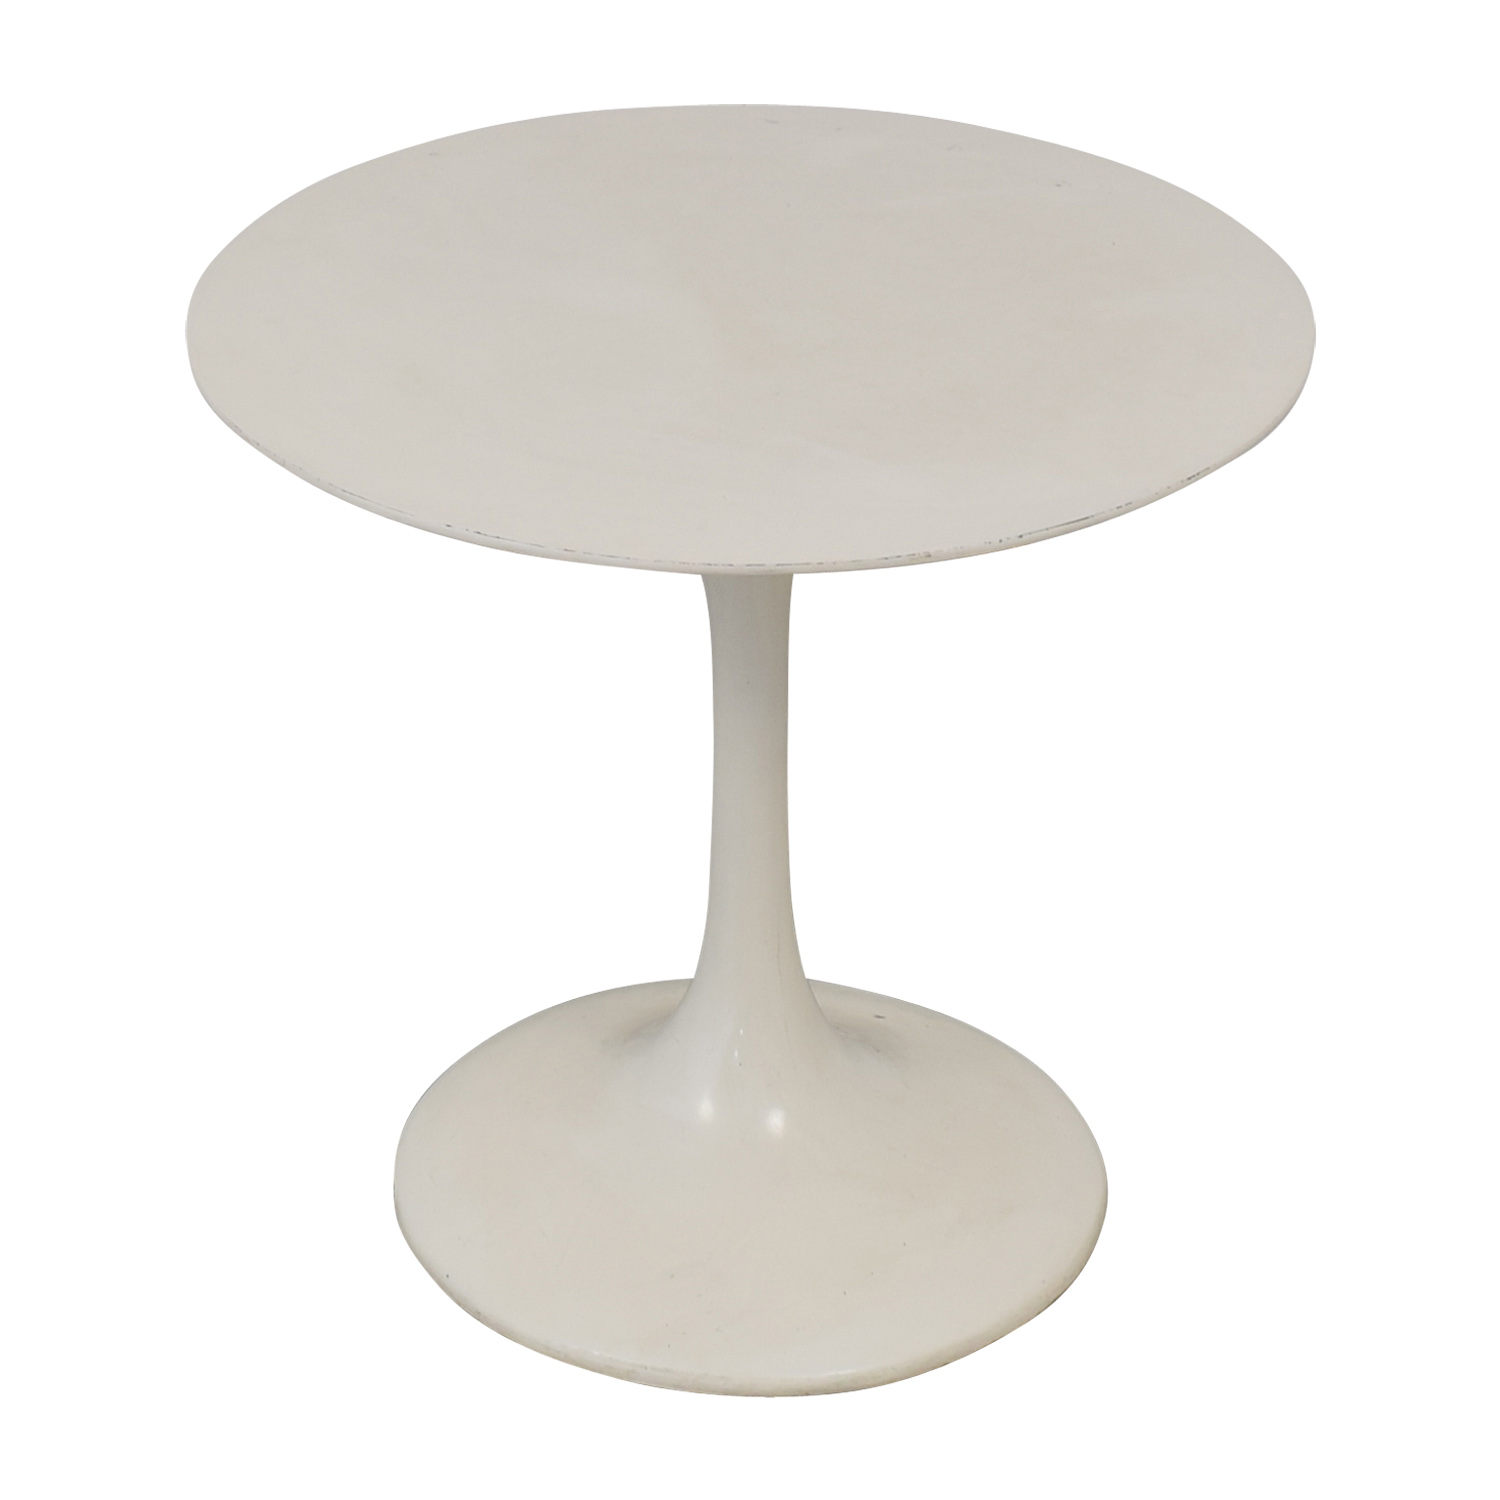 shop  White Round Tulip Table online